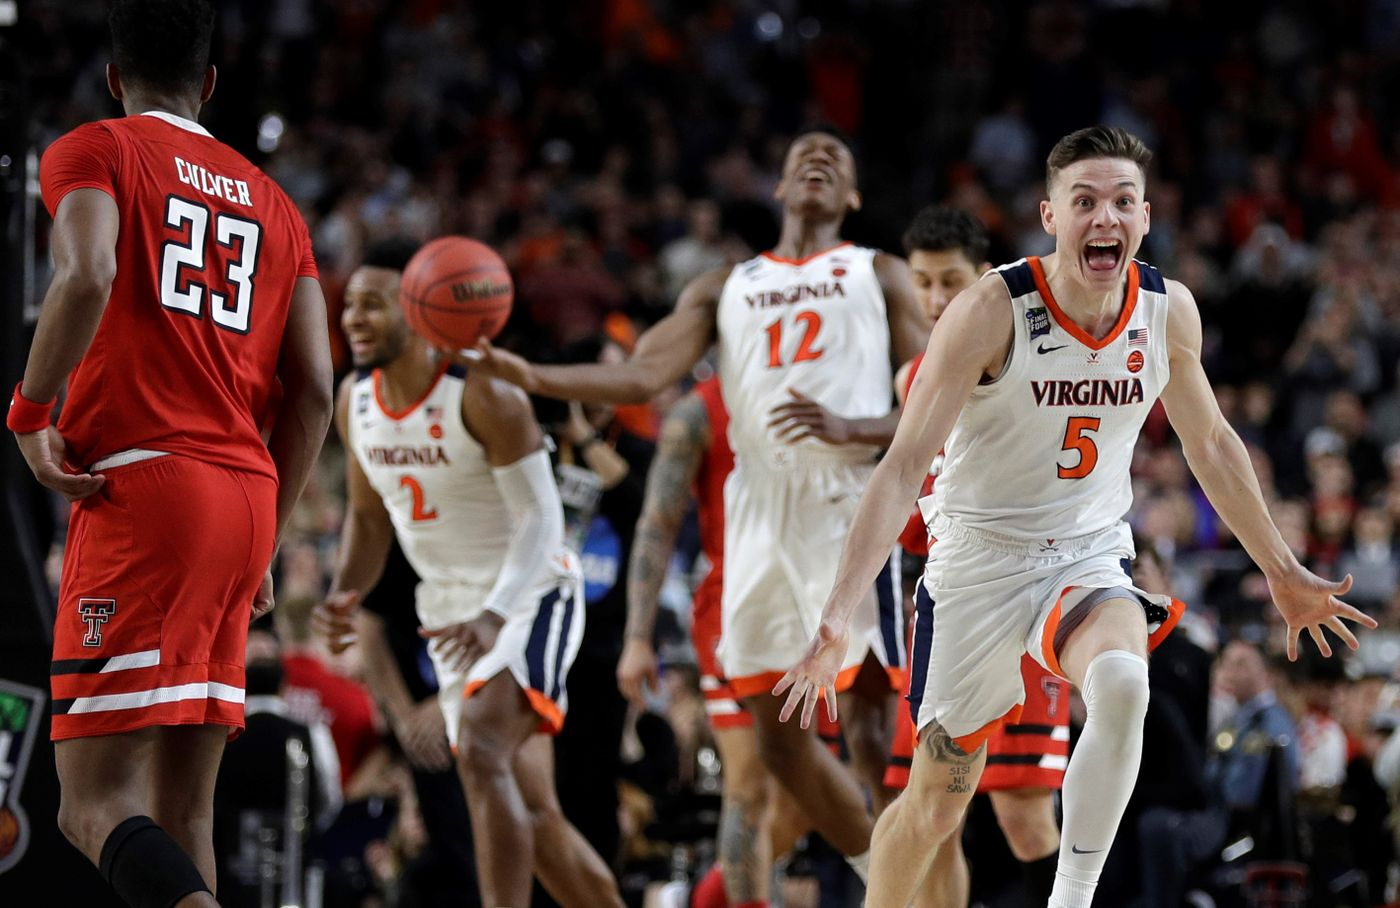 Virginia Cavaliers win the 2019 March Madness Championship.